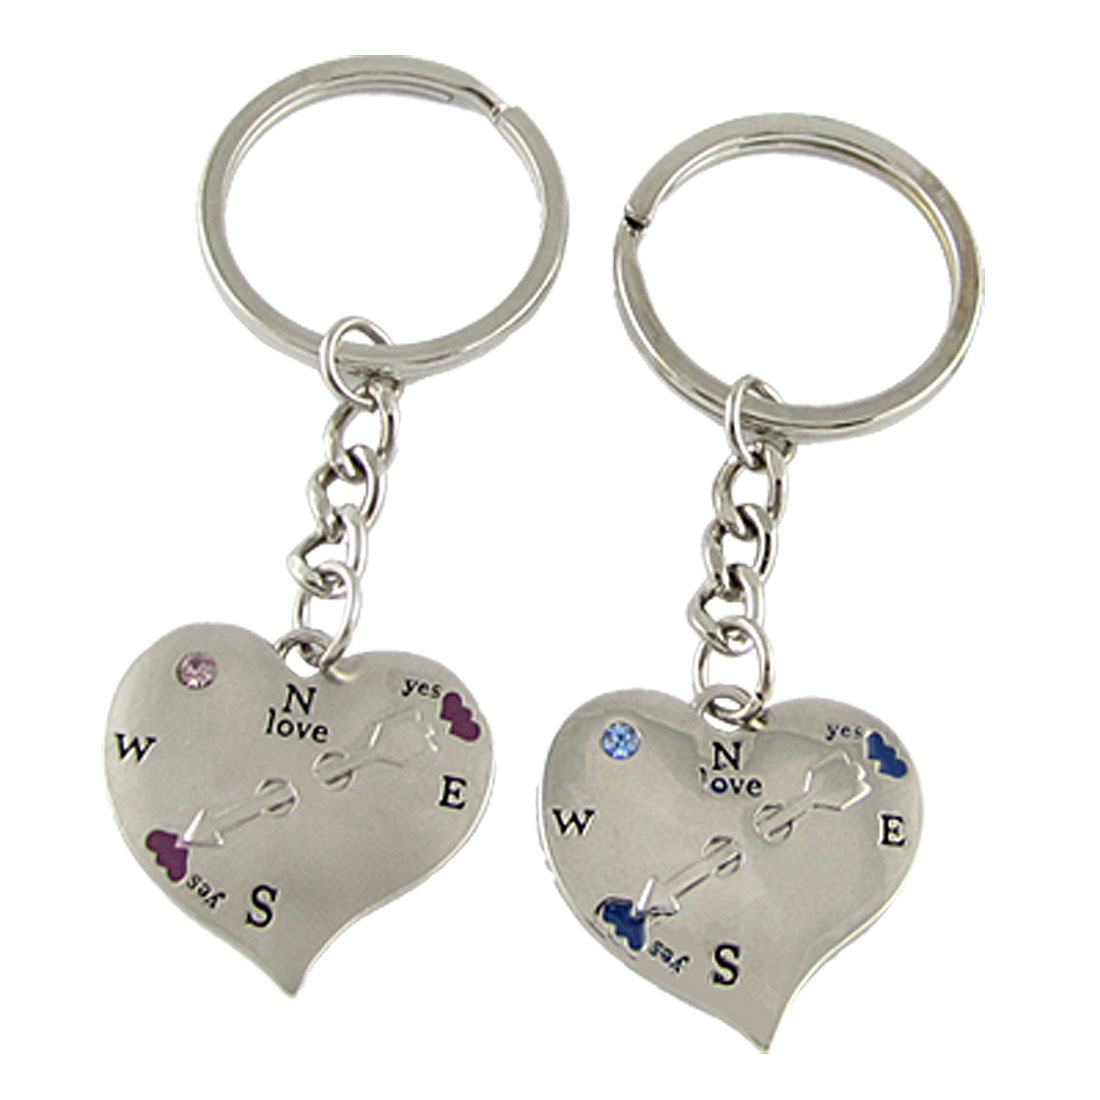 Pair of Alloy Plated Rhinestone Decor Keychain Keyrings for Lovers